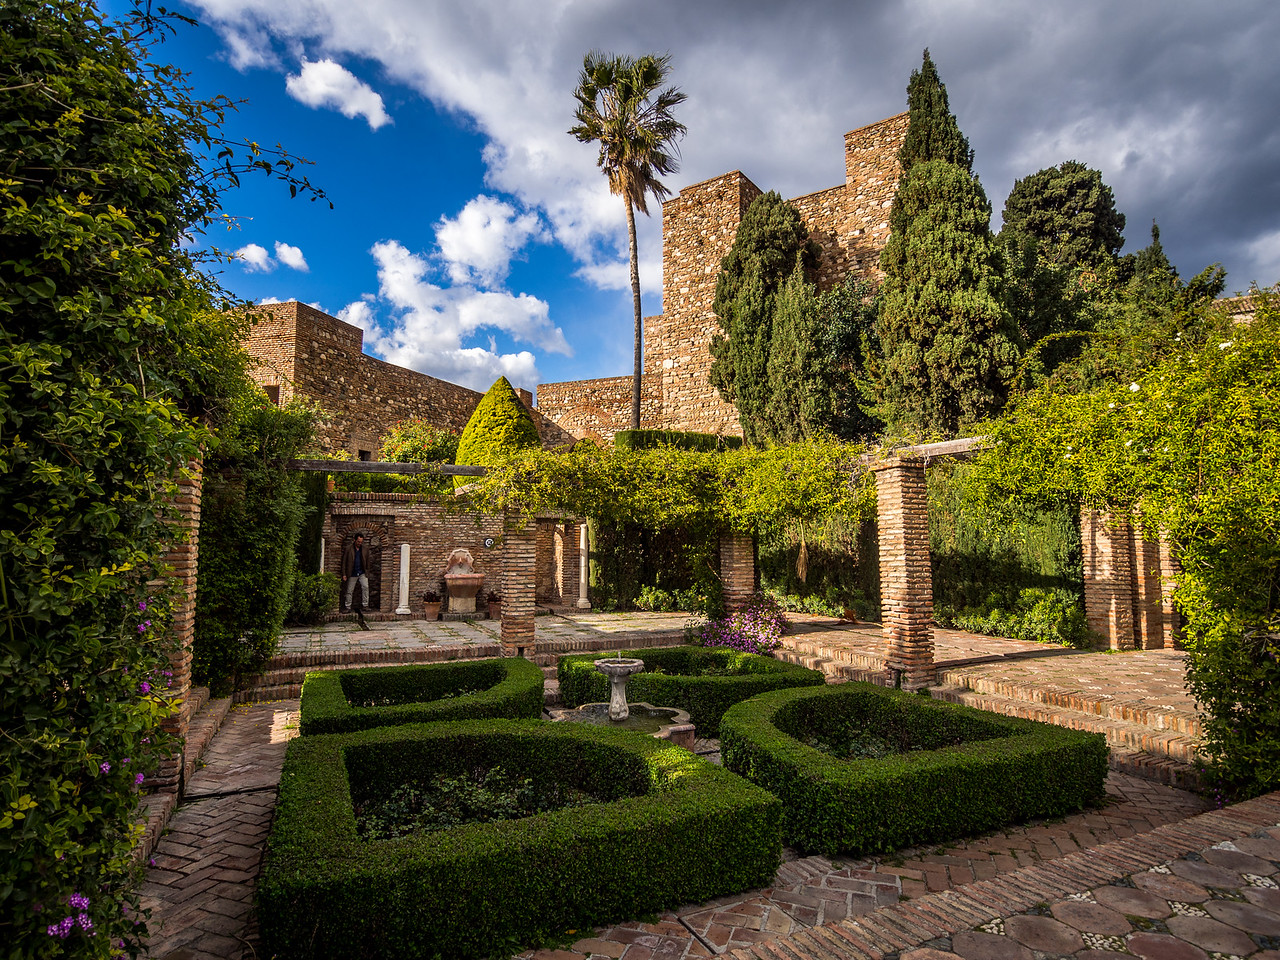 Garden of the Alcazaba, Málaga